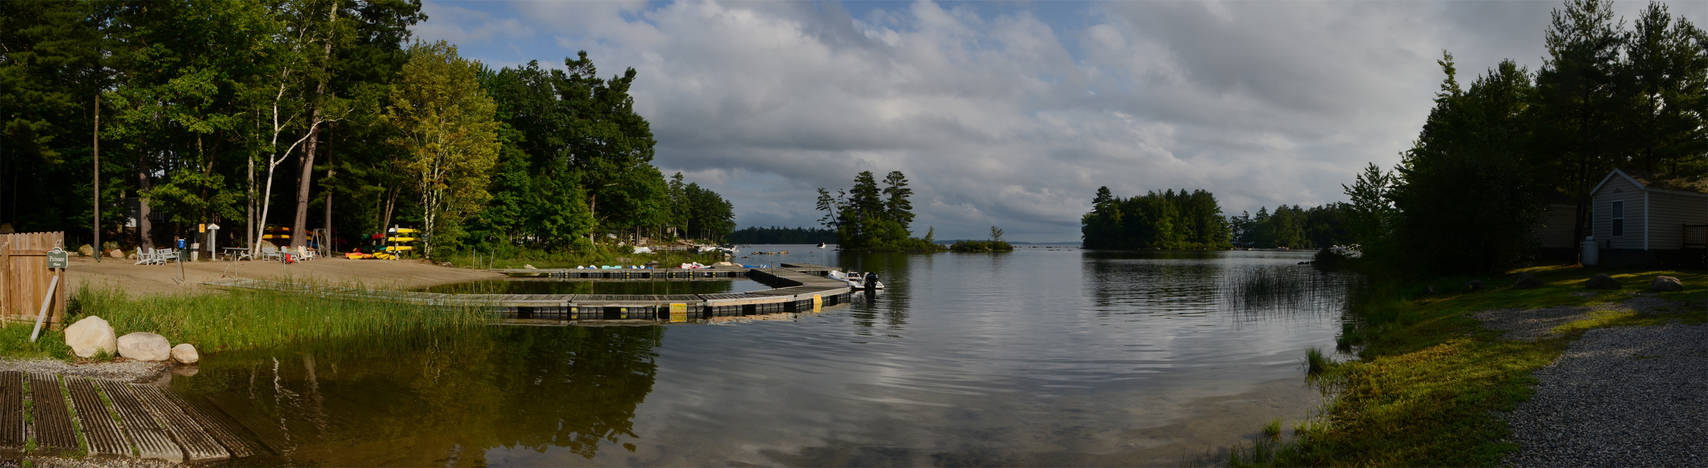 Point Sebago 2012-08-12 3